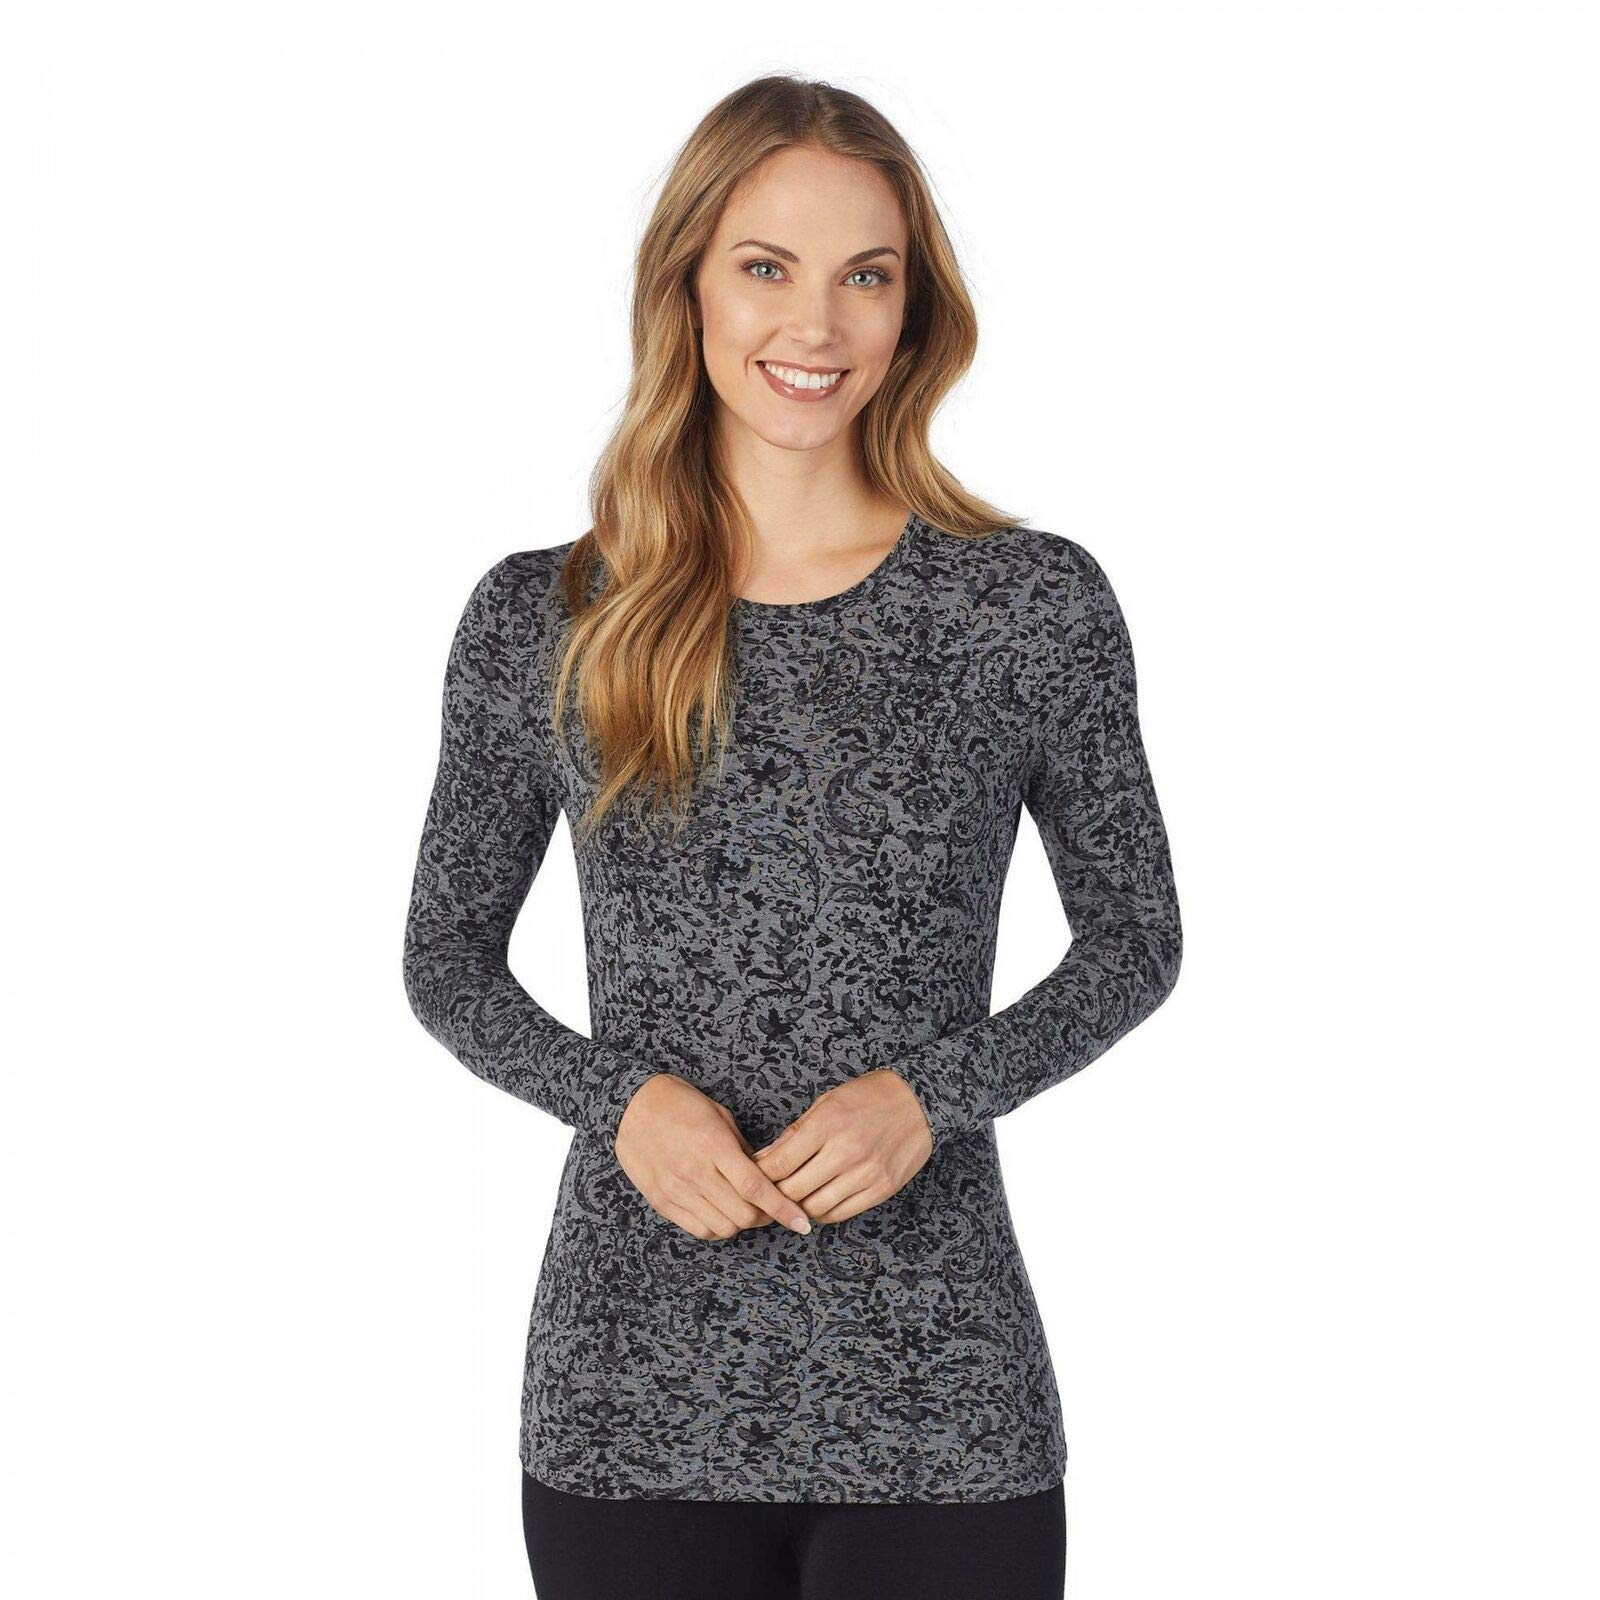 Cuddl Duds Women's Softwear Stretch Long Sleeve Crew Shirt. CD8420816 Tonal Paisley XS by Cuddl Duds